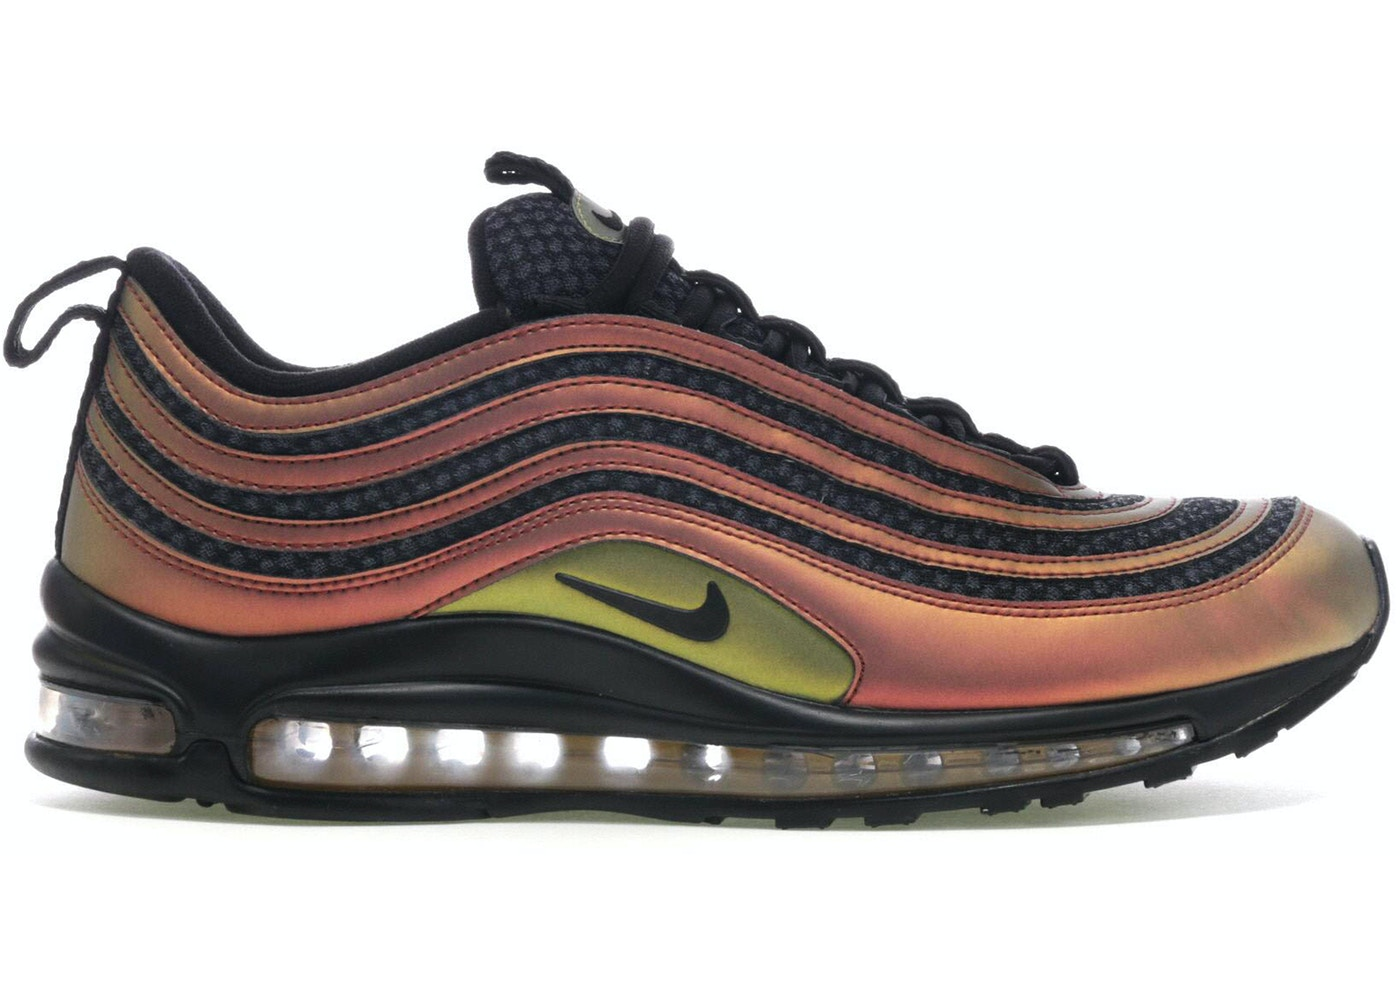 competitive price 59c1f 5bb47 Air Max 97 Ultra 17 Skepta